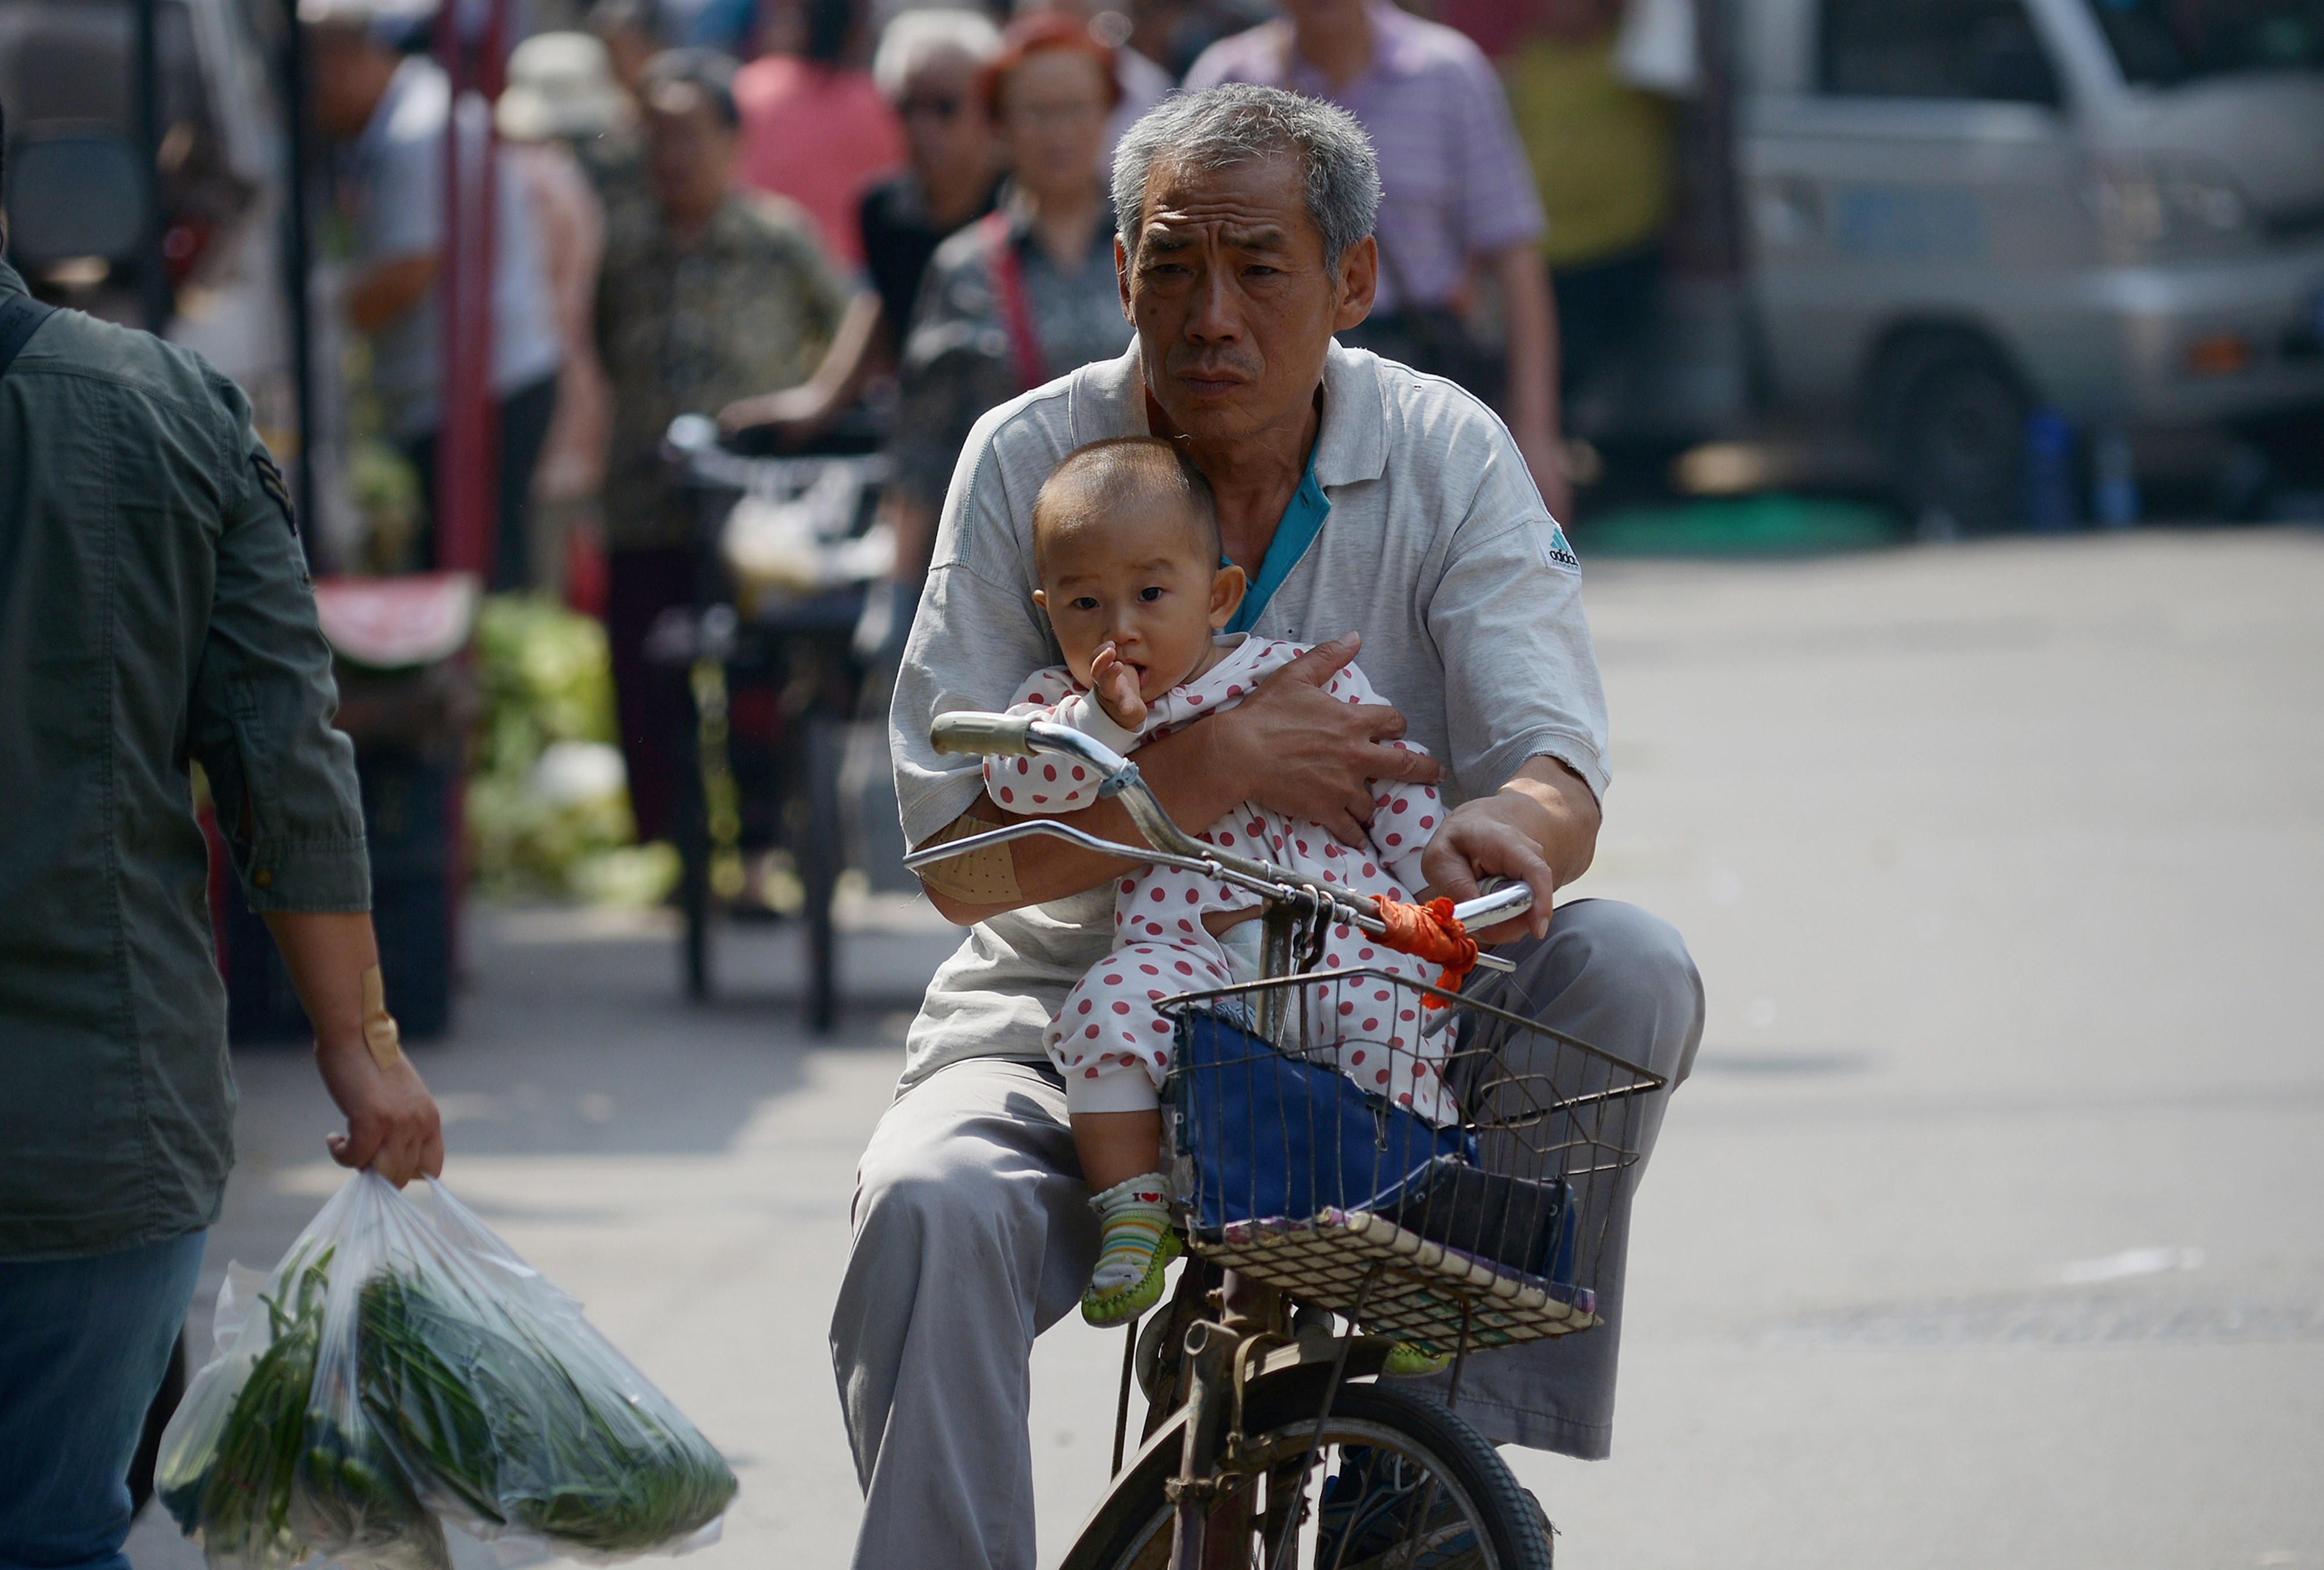 Donation to Poor Children in China Comes With Propaganda Strings Attached